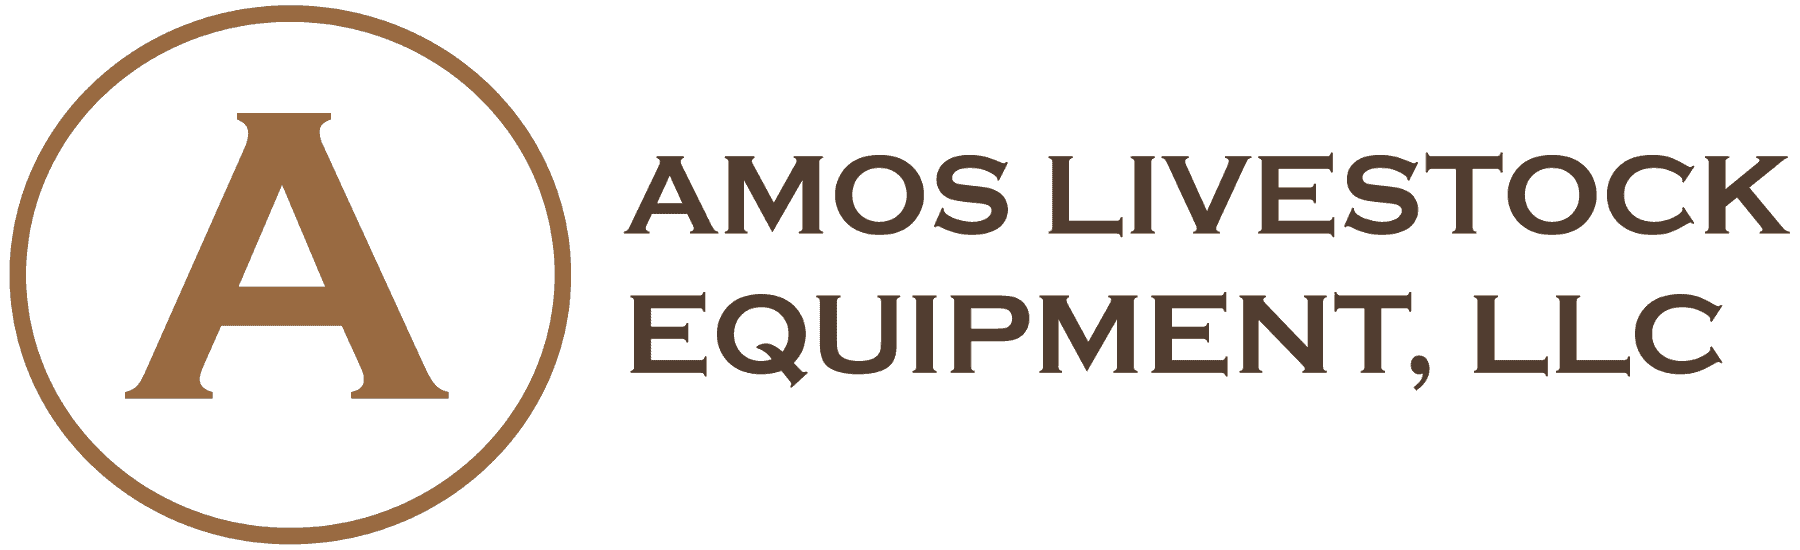 Amos Livestock Equipment, LLC